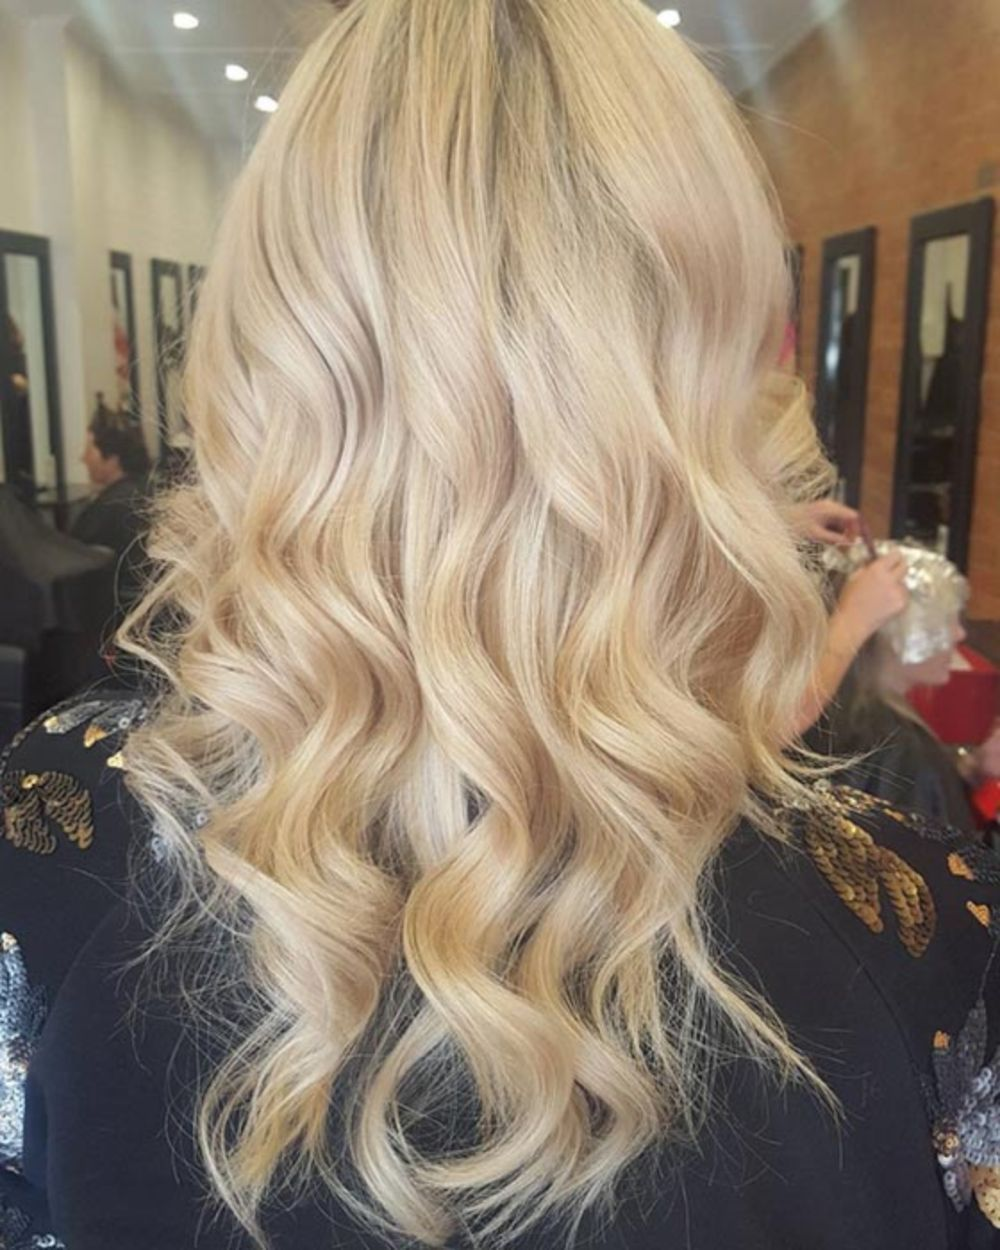 51 Pretty Blonde Hair Color Ideas | Blonde hair colors, Colors and ...